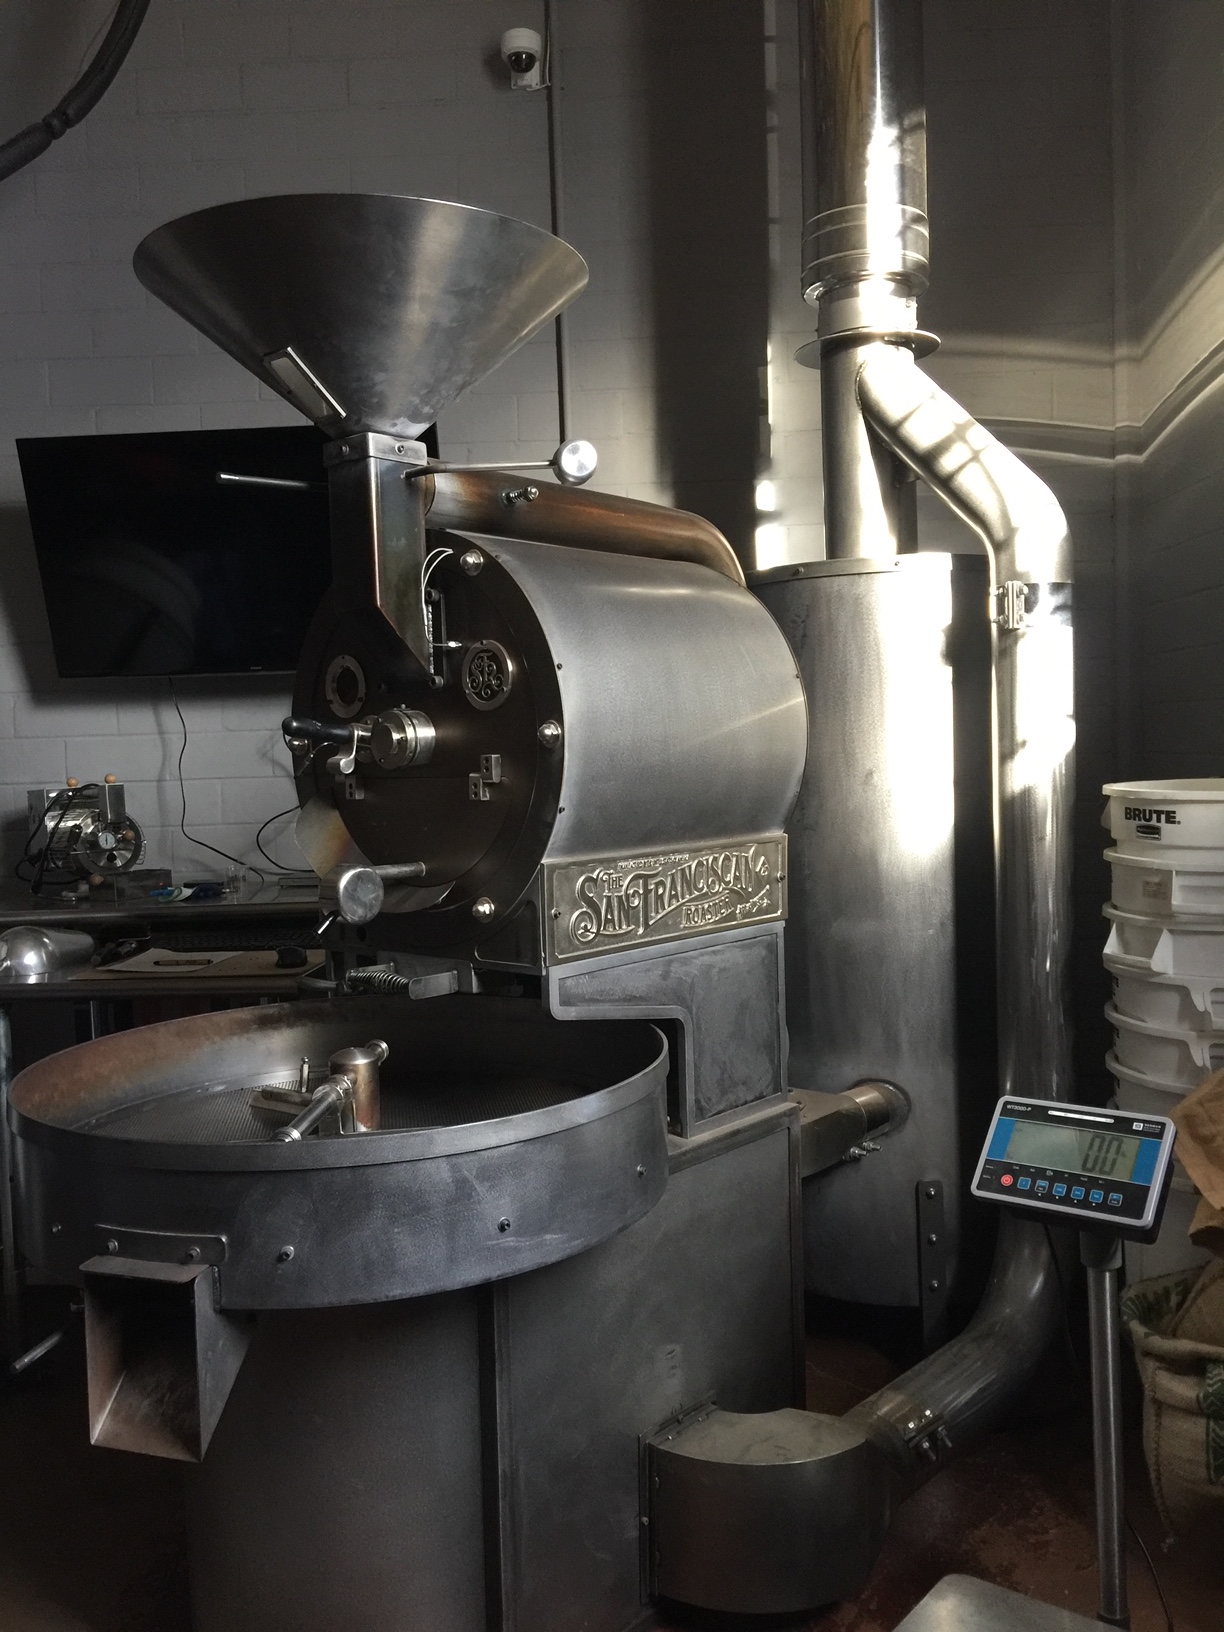 San Franciscan roaster natural finish